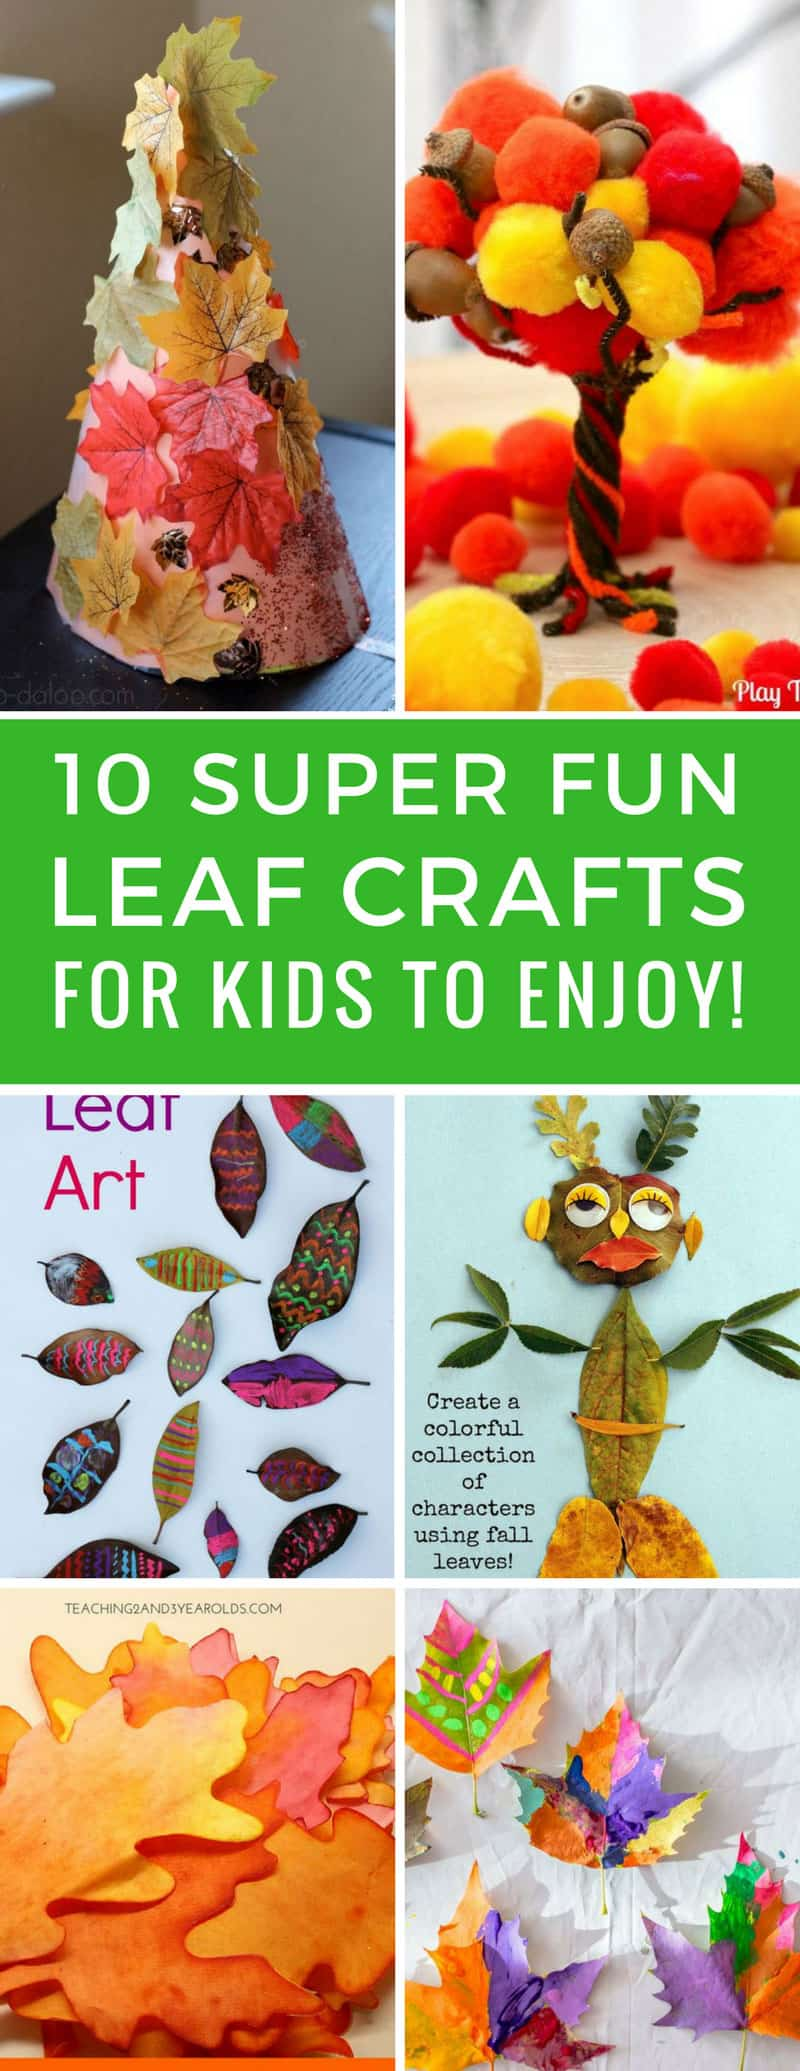 These leaf crafts for kids are so much fun and will be the perfect activities for Fall homeschool! Thanks for sharing!